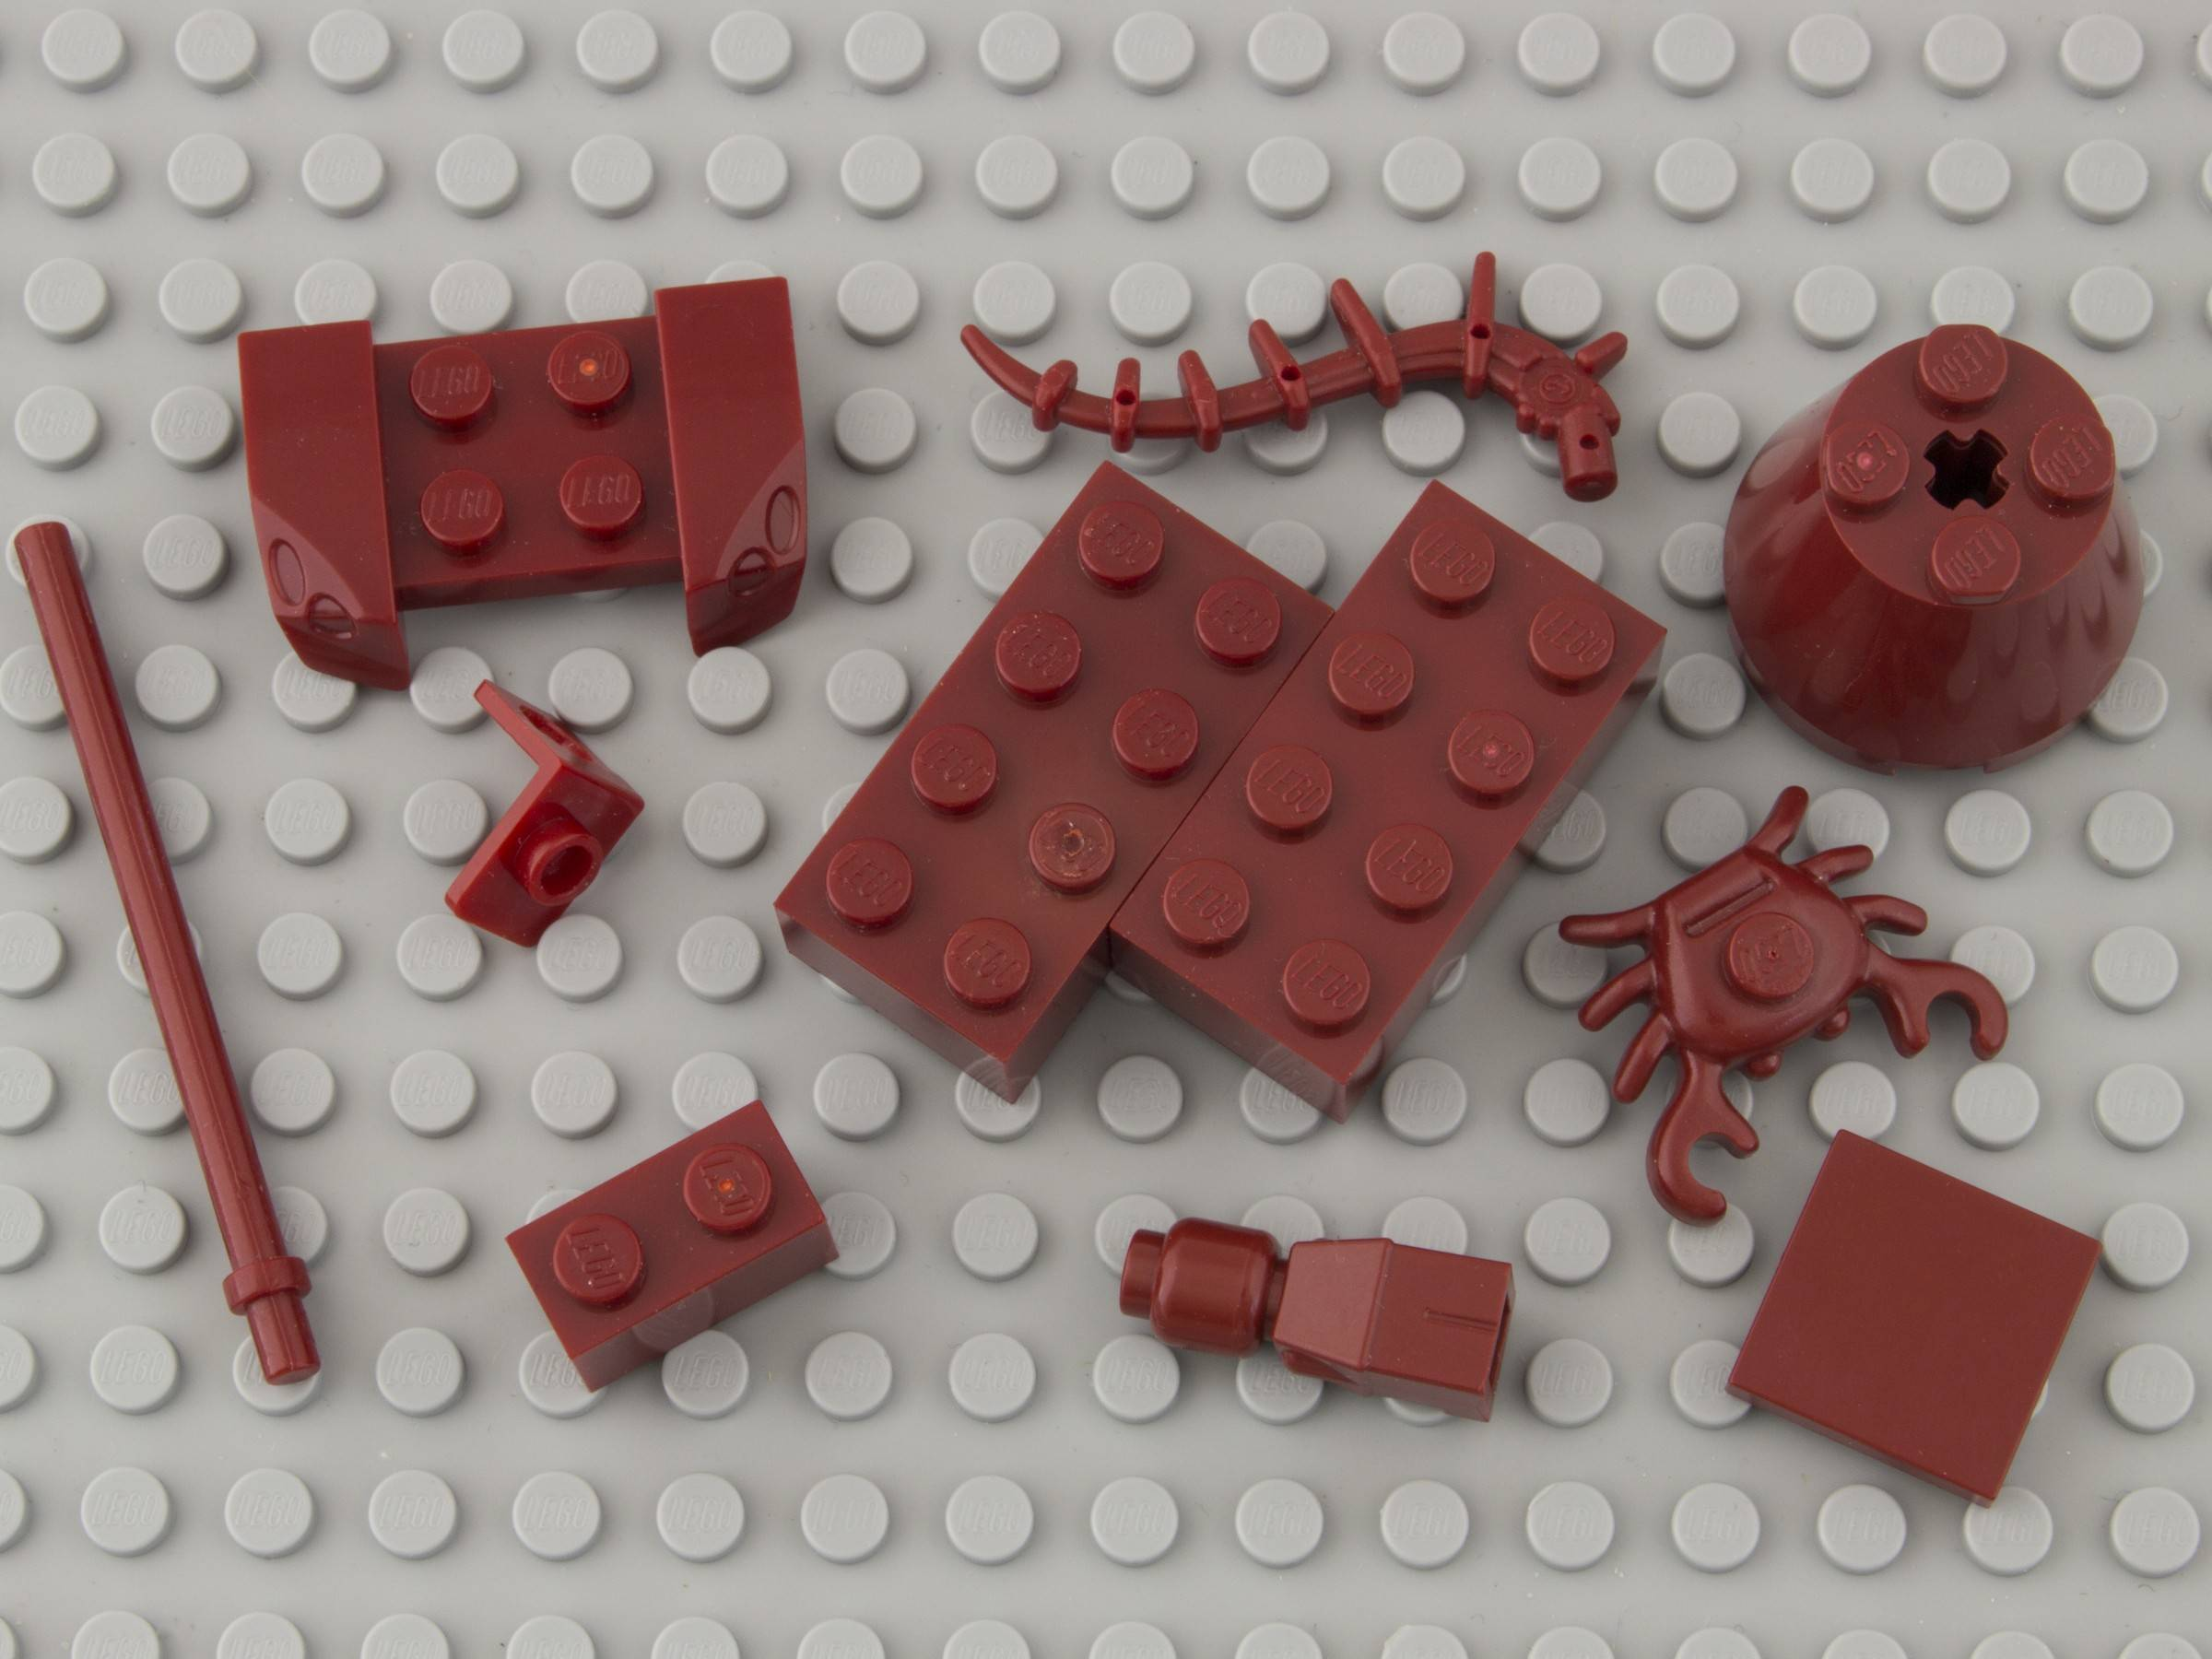 154—Dark Red lego